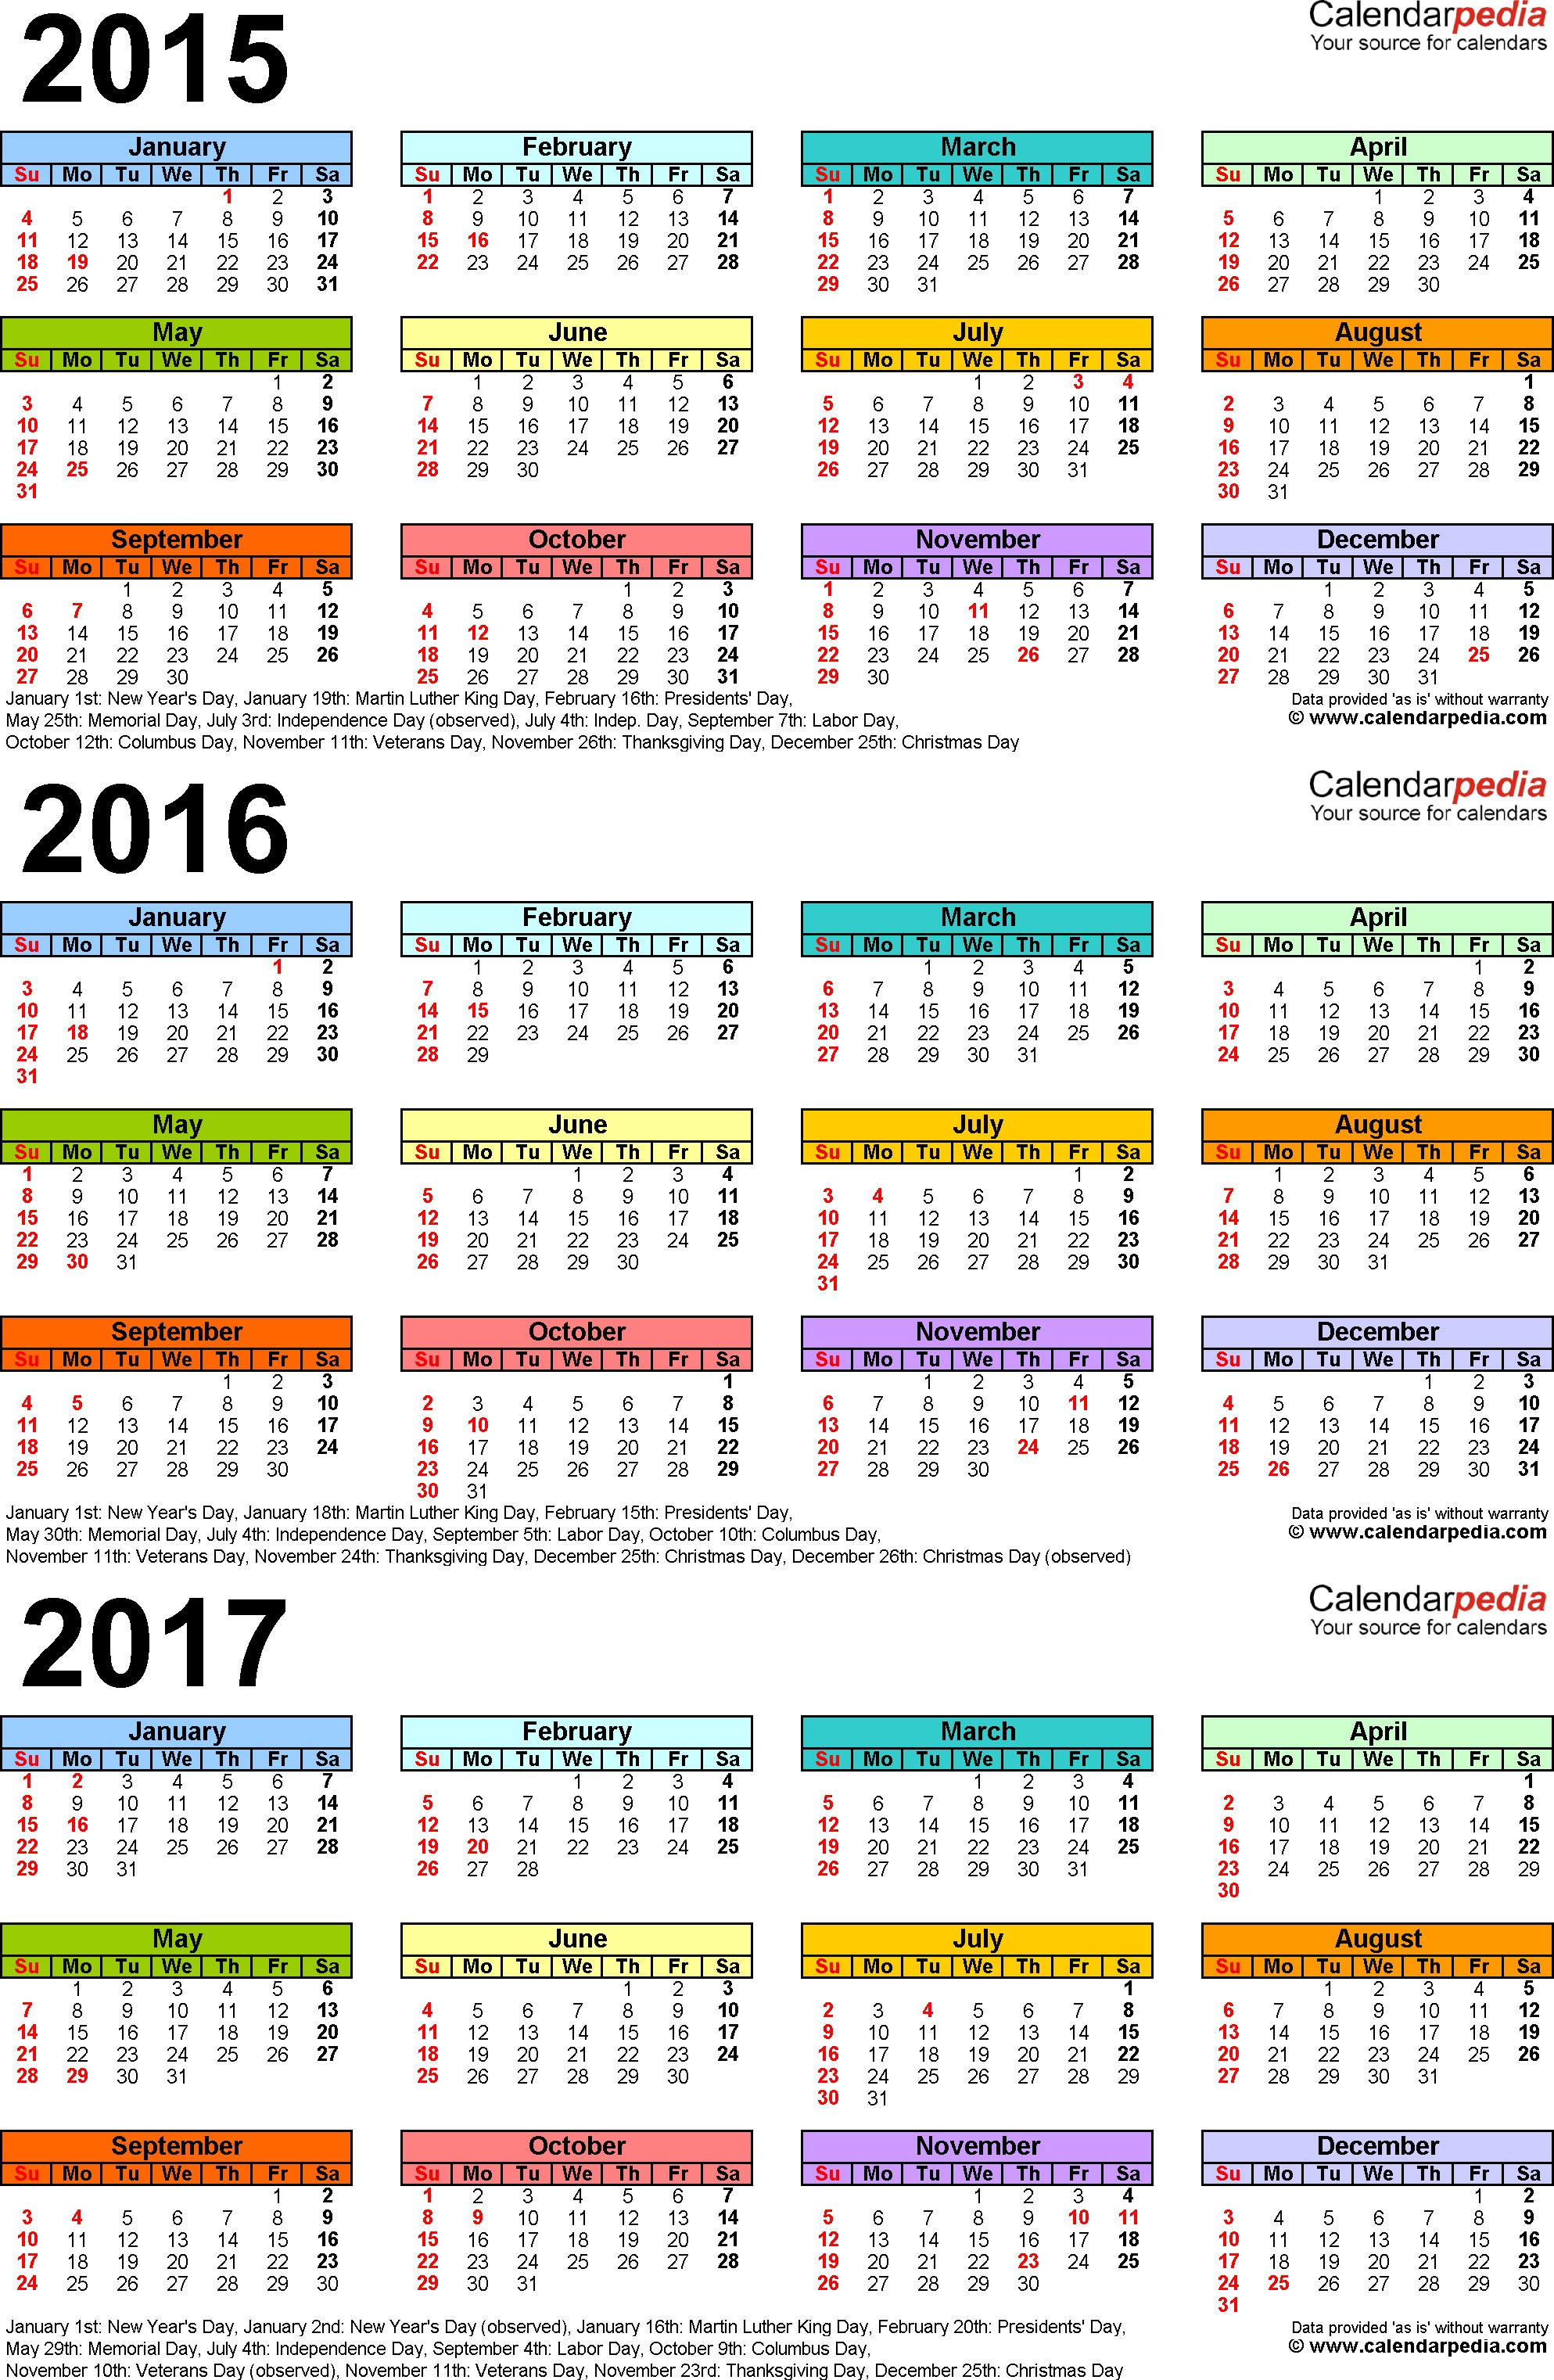 March Calendar Blank 2019 Mejores Y Más Novedosos 2015 2016 2017 Calendar 4 Three Year Printable Pdf Calendars Of March Calendar Blank 2019 Más Recientes Lagunitas Announces 2018 Release Calendar Willitized Coffee Stout